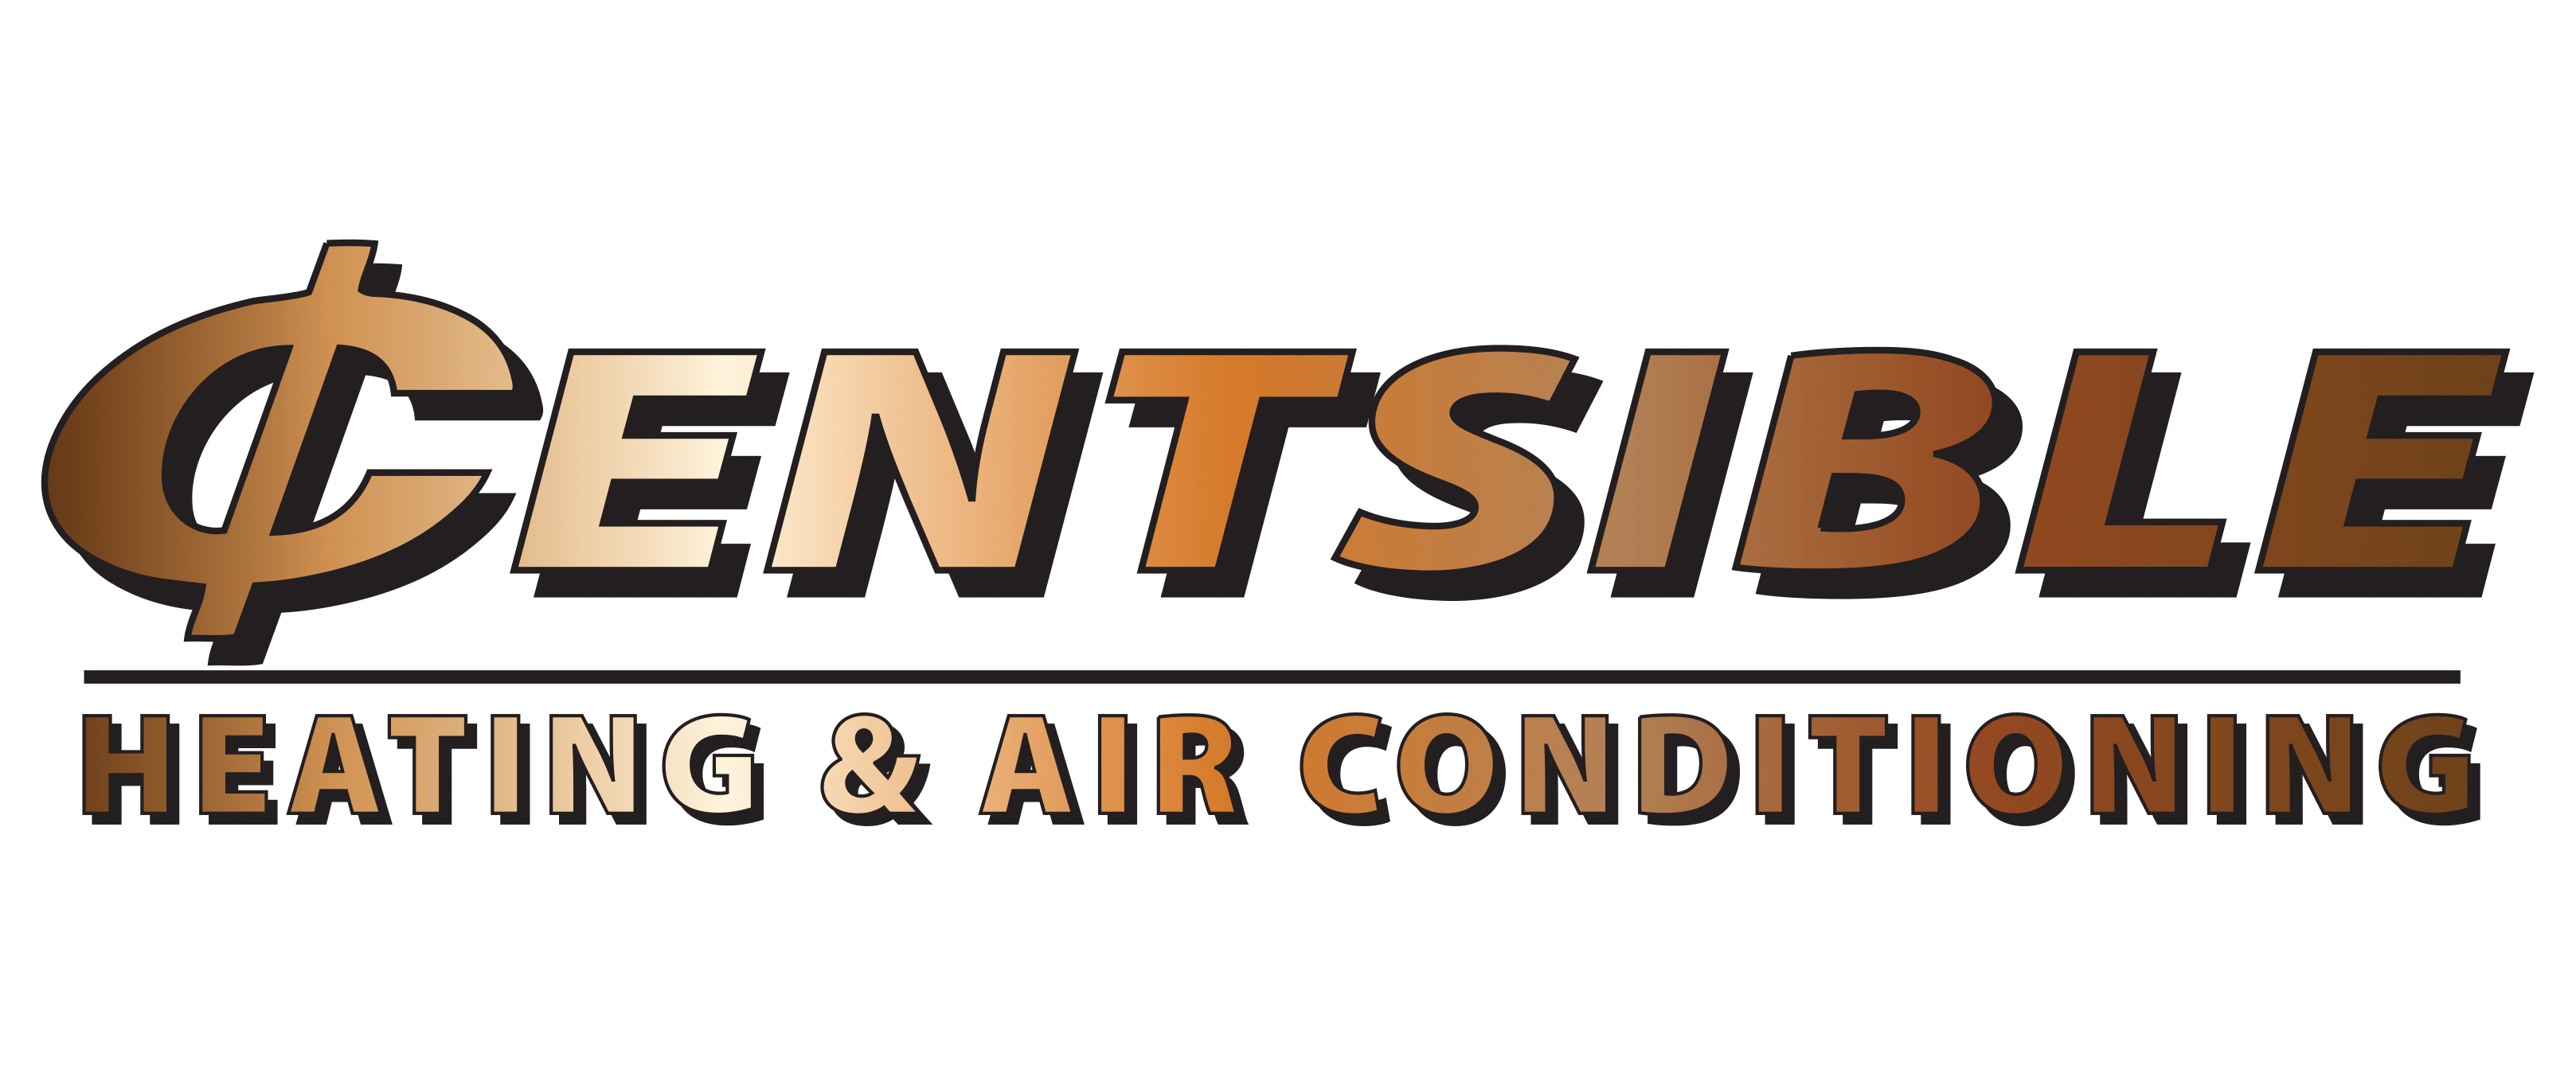 Centsible Heating & Air Conditioning